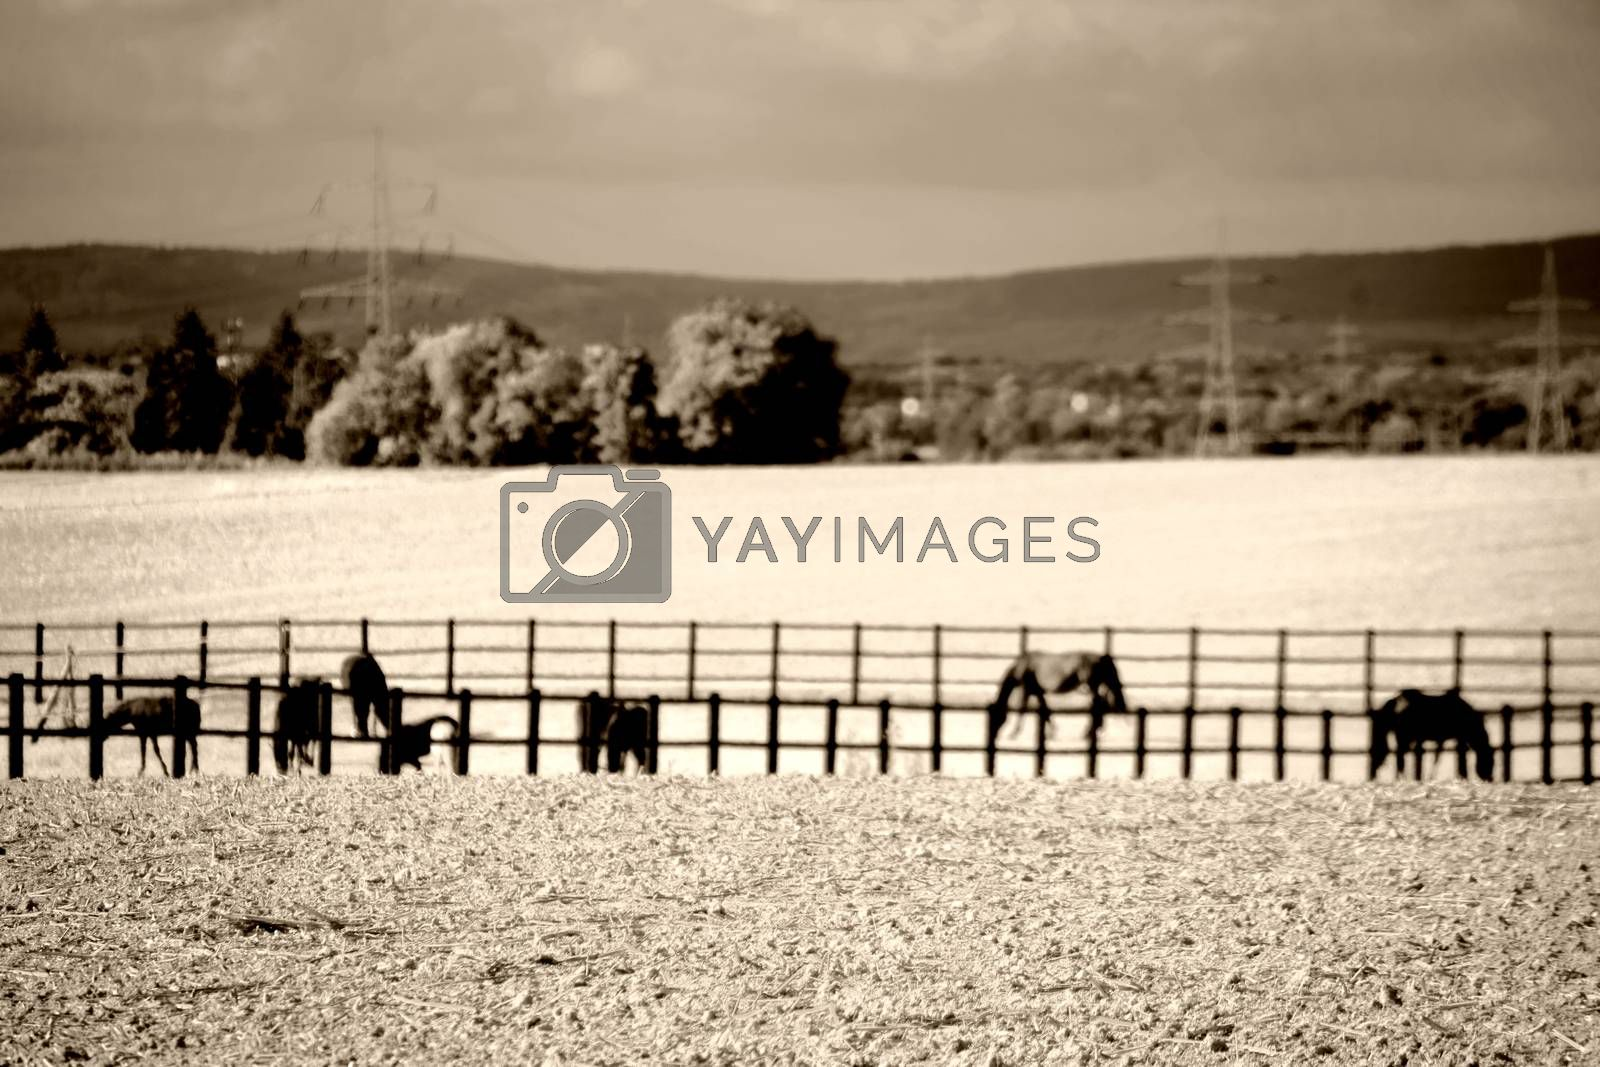 A herd of black horses in a paddock behind a fence.